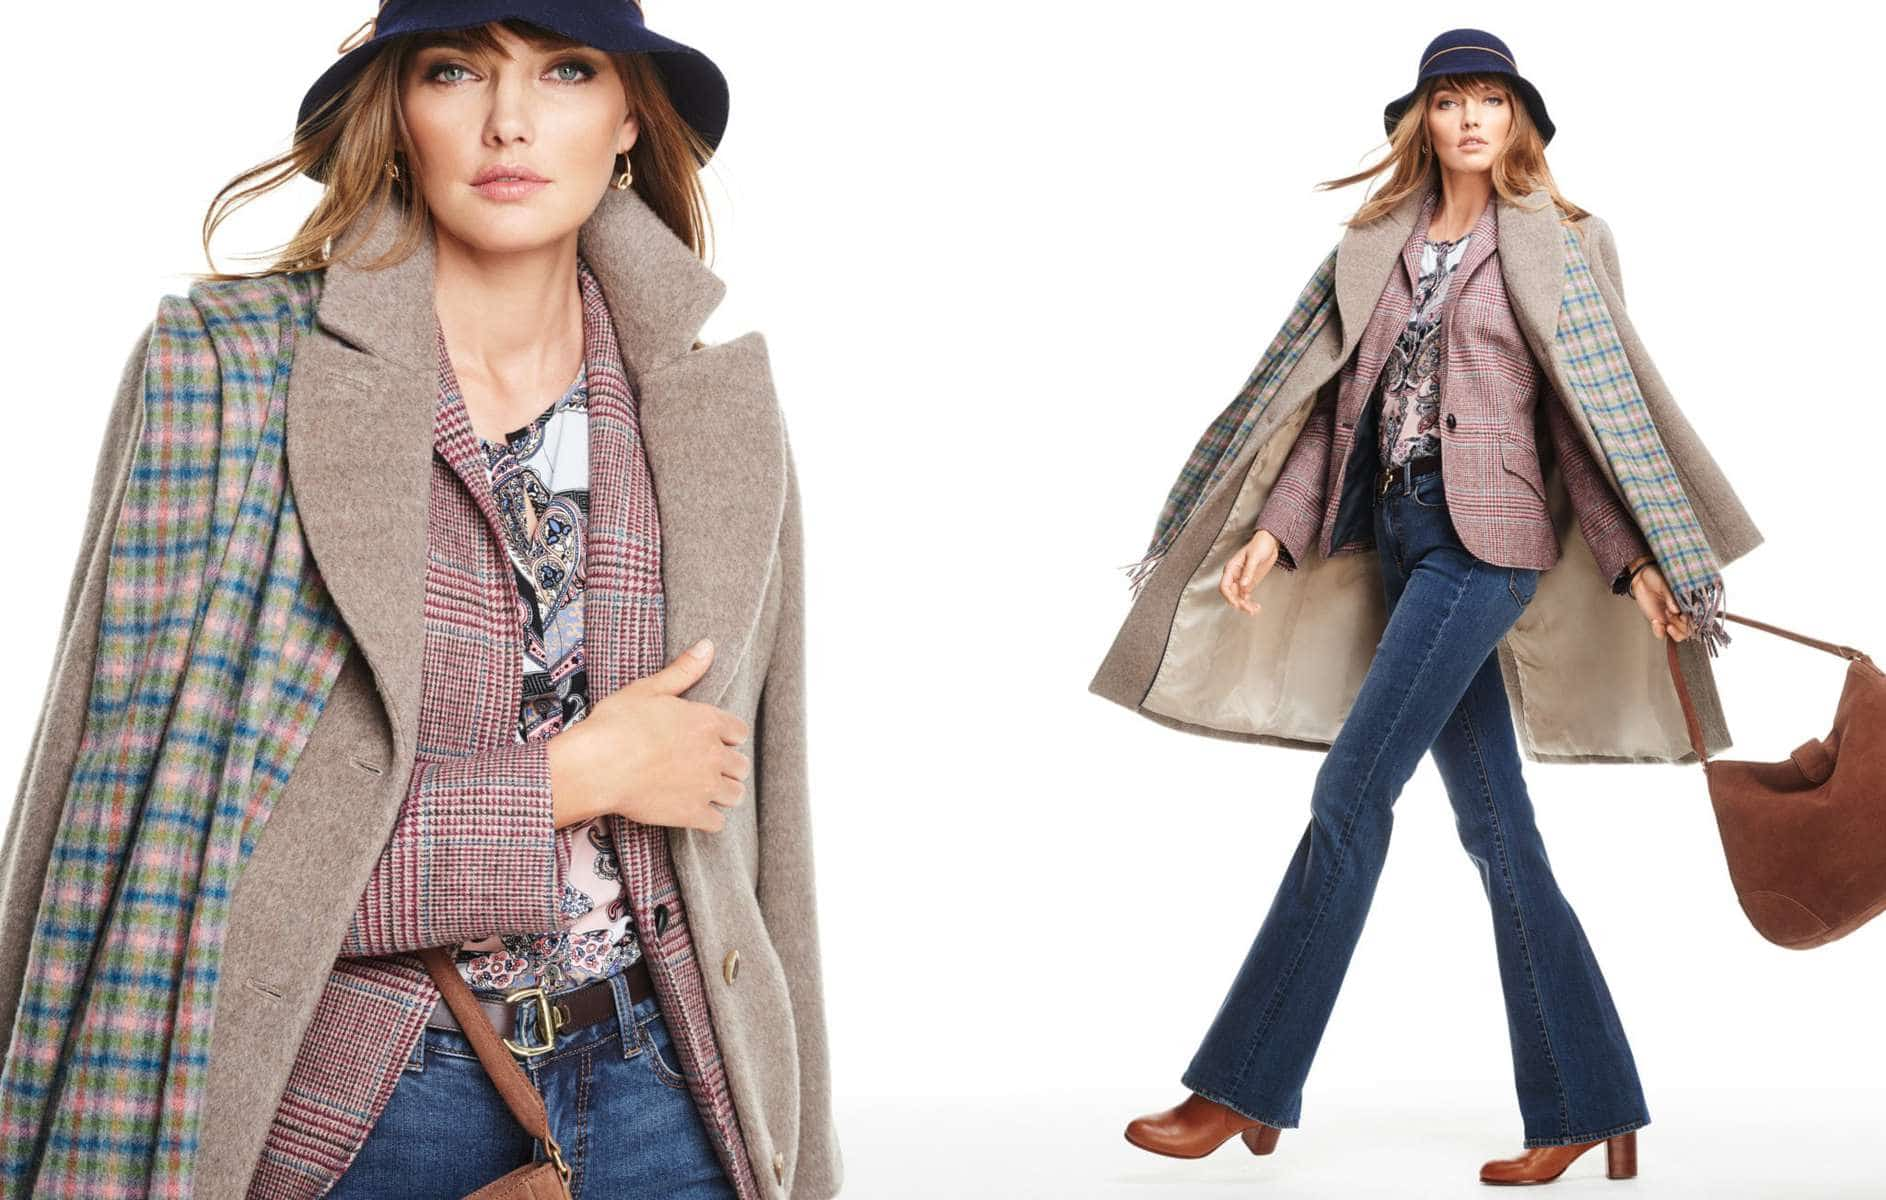 Talbots Fall 2015 Look Book Preview featuring Annie Hall Inspired Denim Look